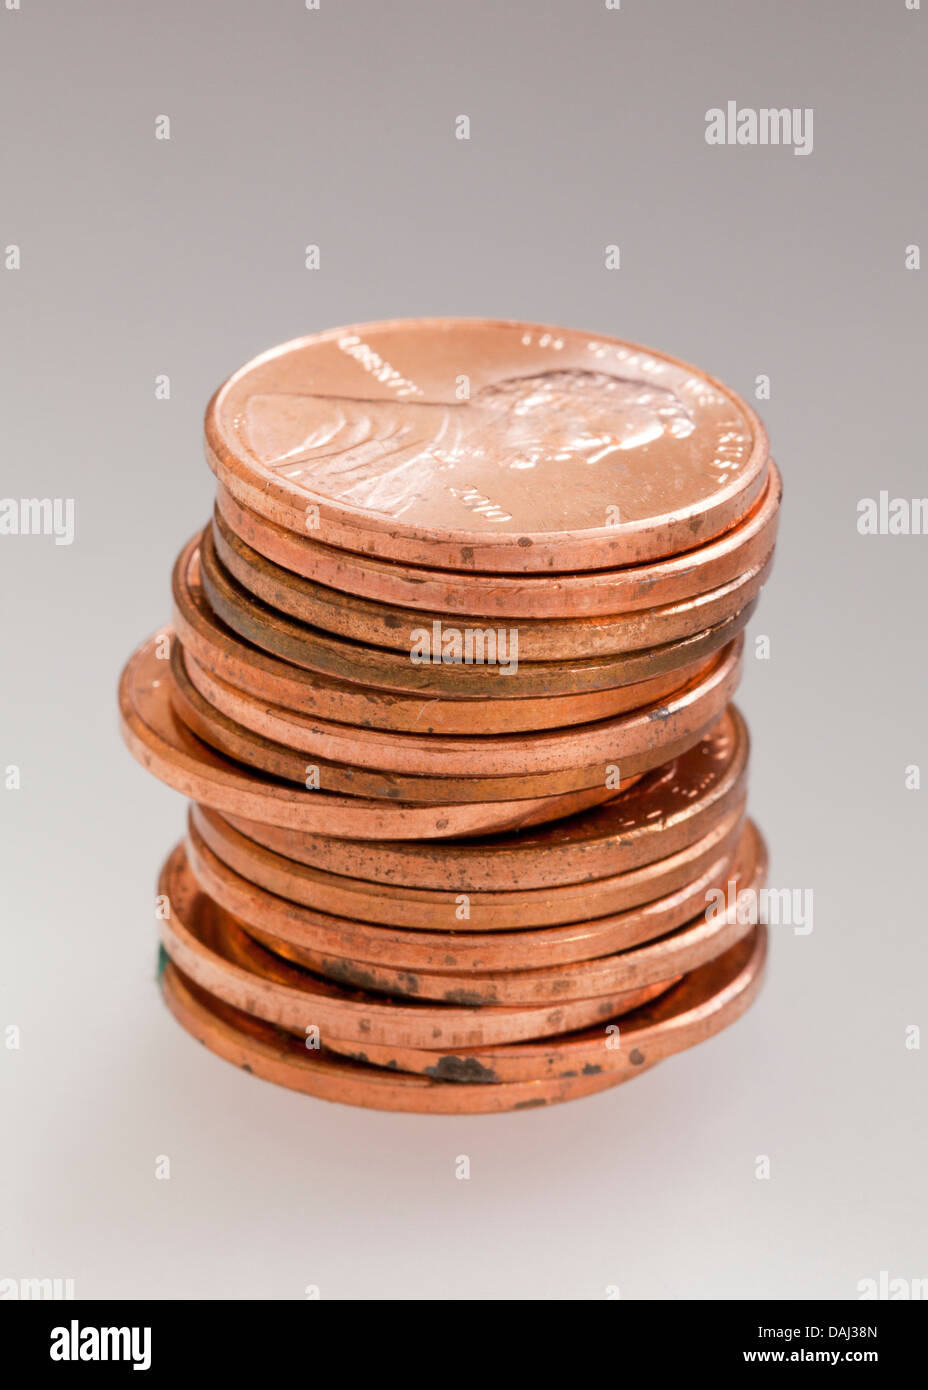 Stack of pennies - Stock Image